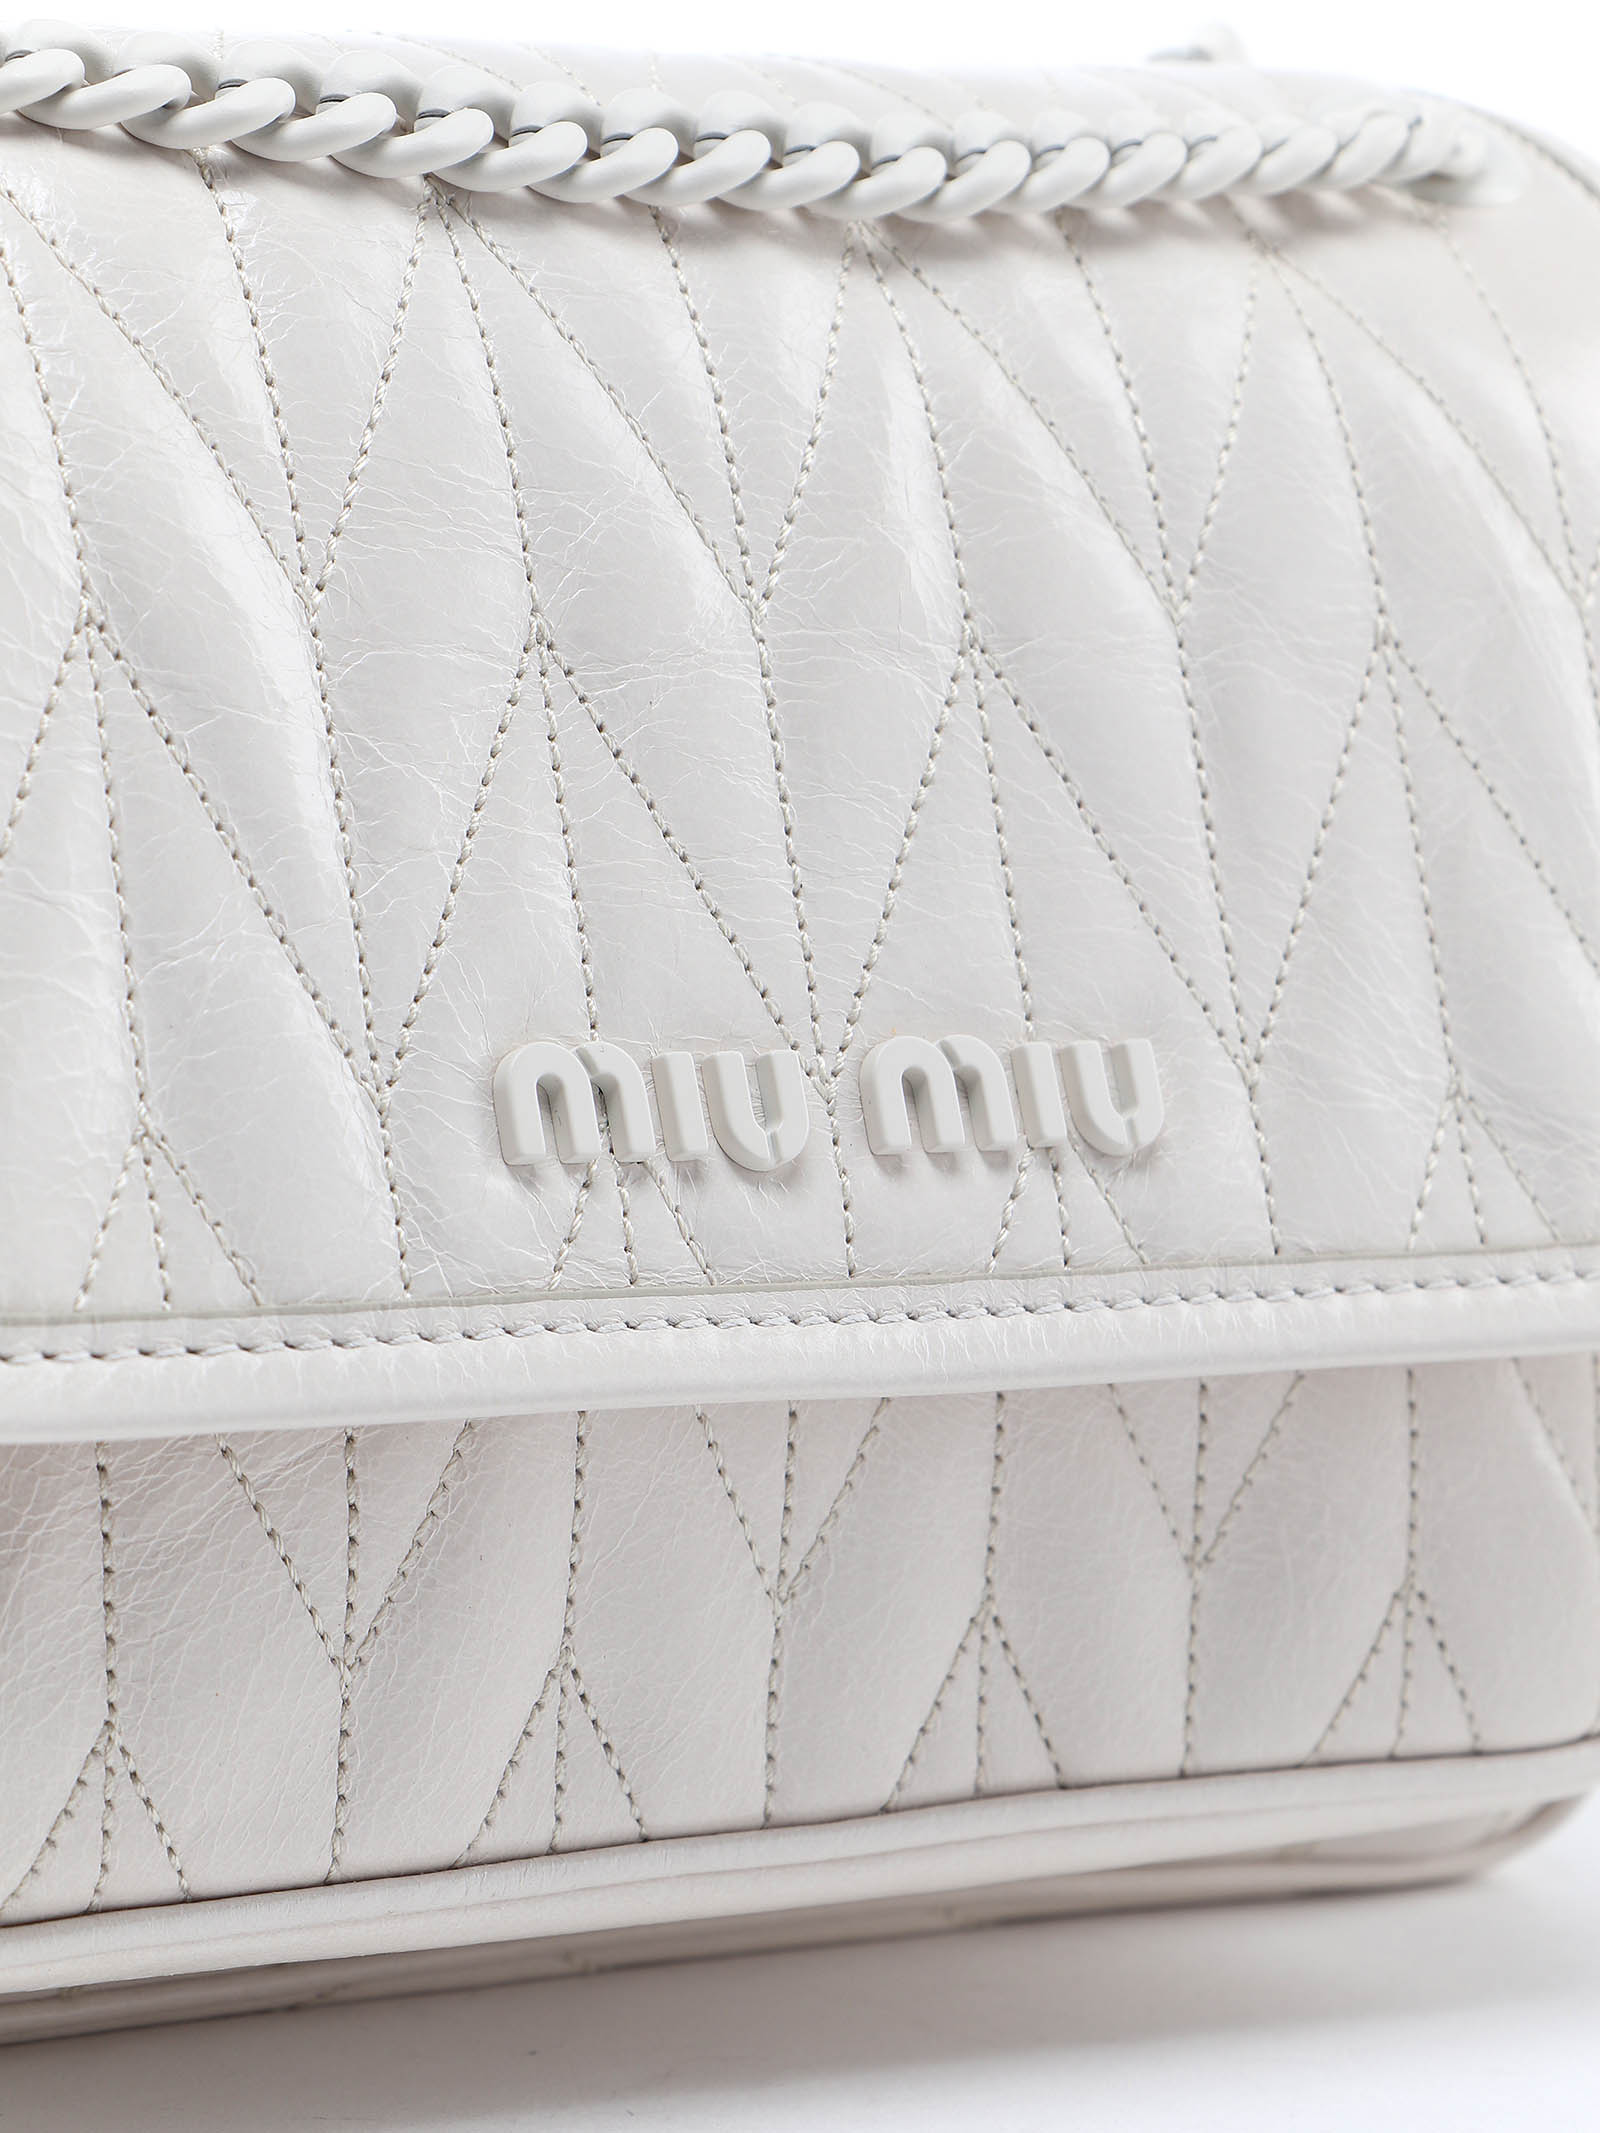 Immagine di Miu Miu | Shoulder Bag Vit.Shine